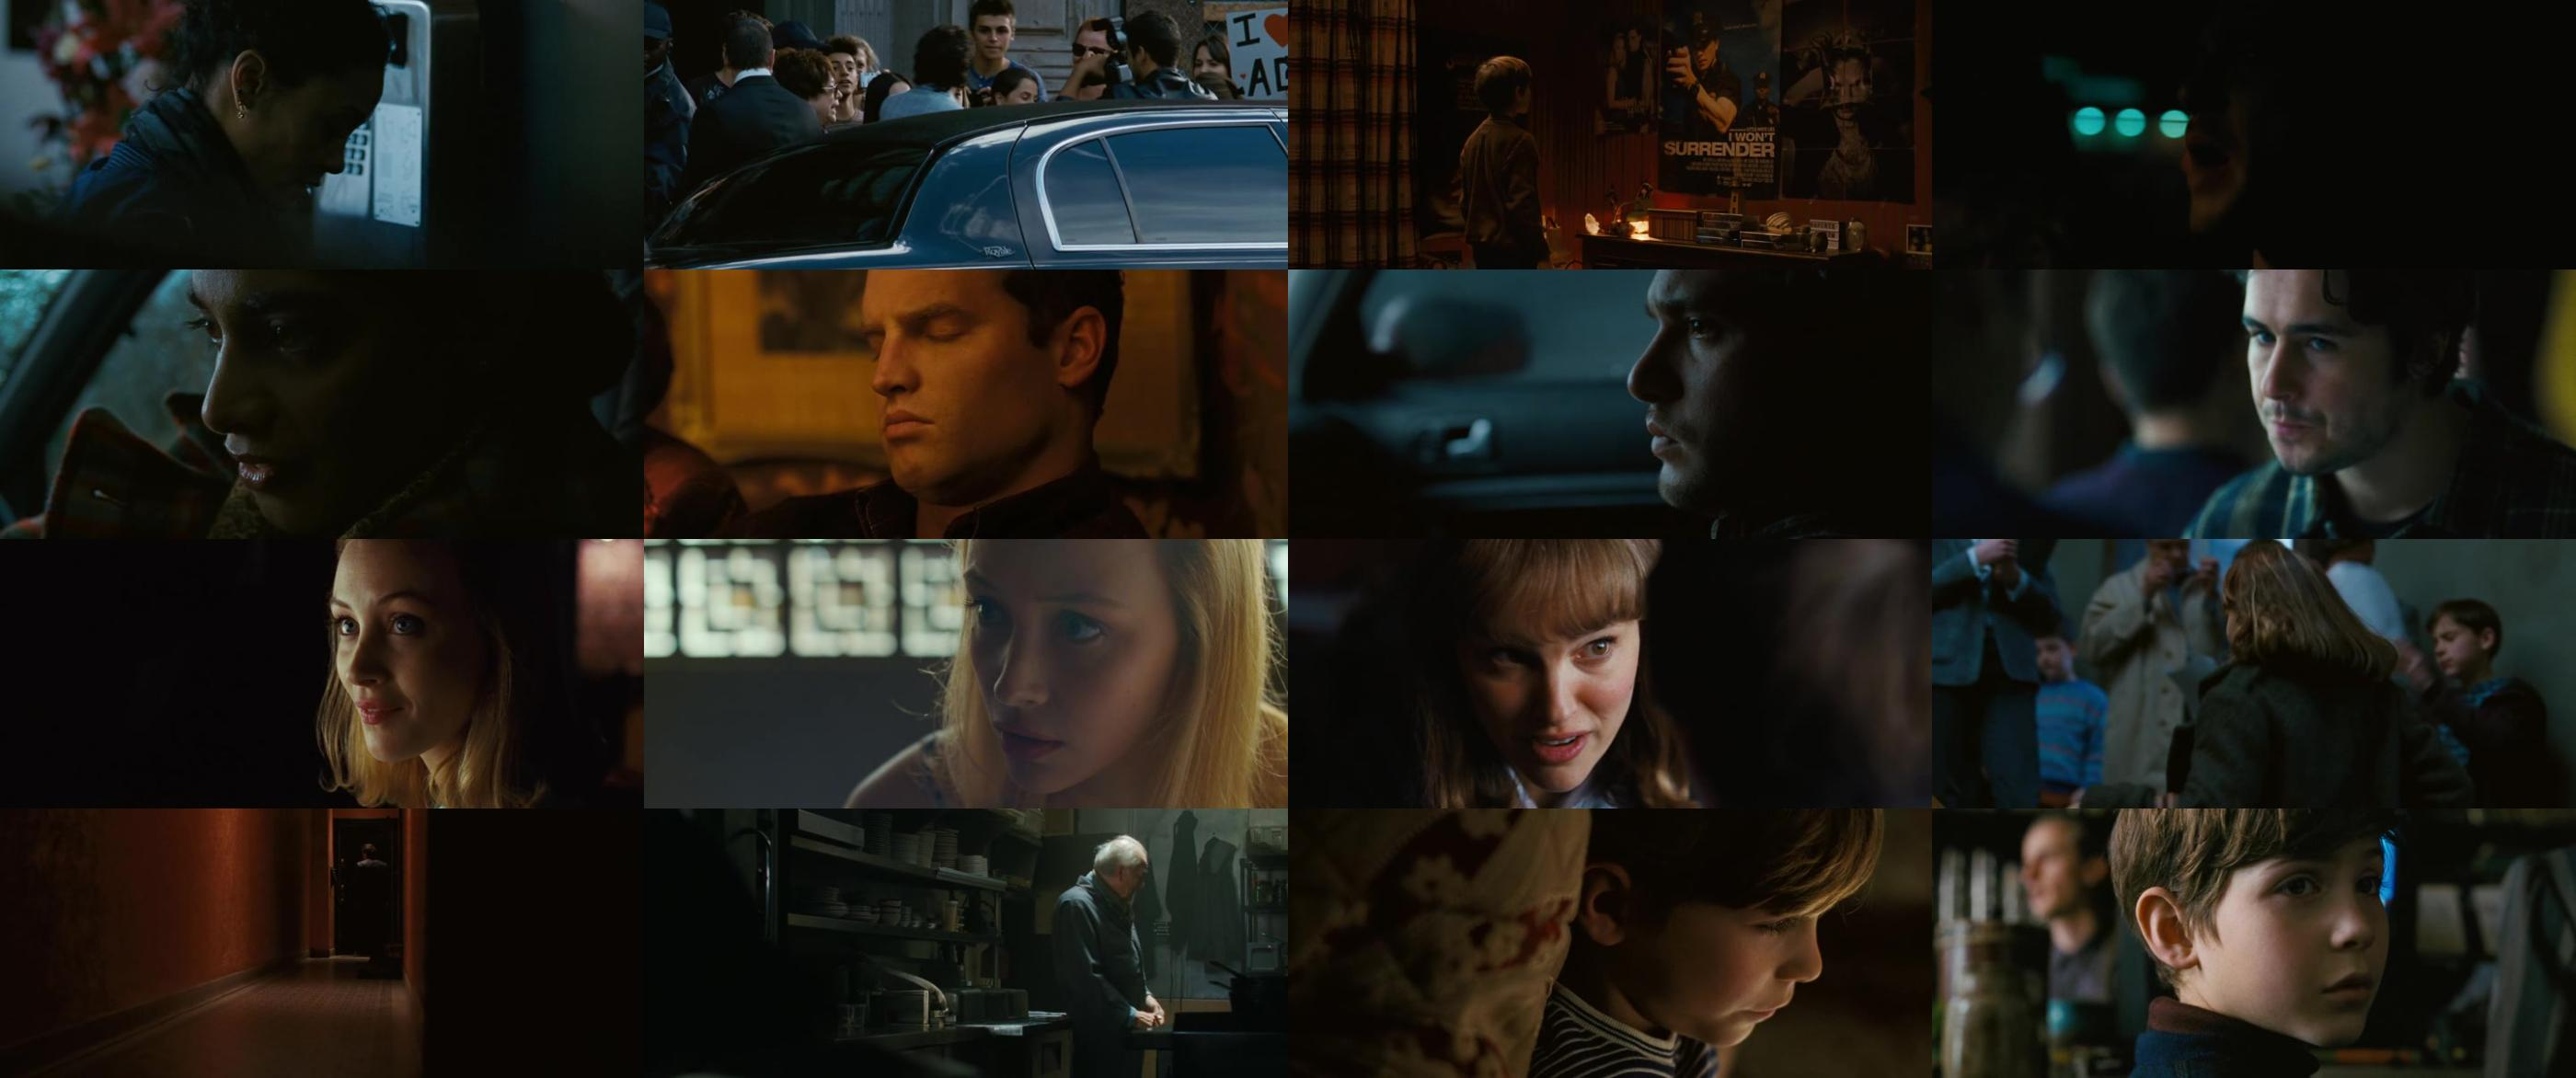 The Death And Life of John F Donovan 2018 WEB DL XviD MP3 FGT